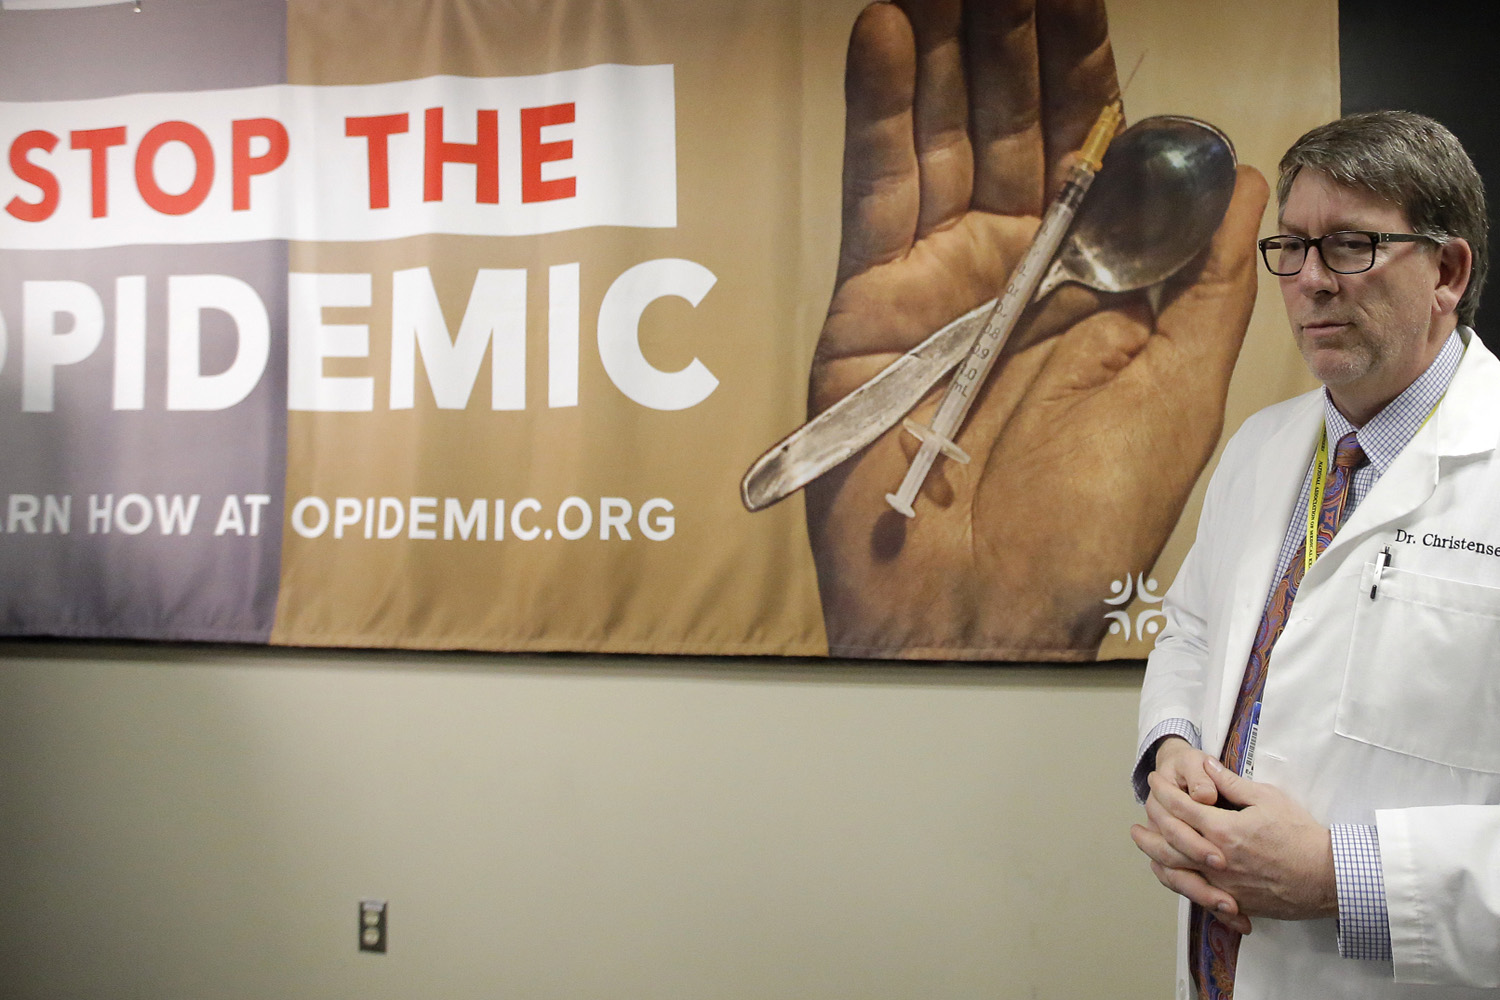 Dr. Erik Christensen, chief medical examiner at the Utah Department of Health, looks on during a press conference during their new campaign Stop the Opidemic. (Rick Bowmer/AP)